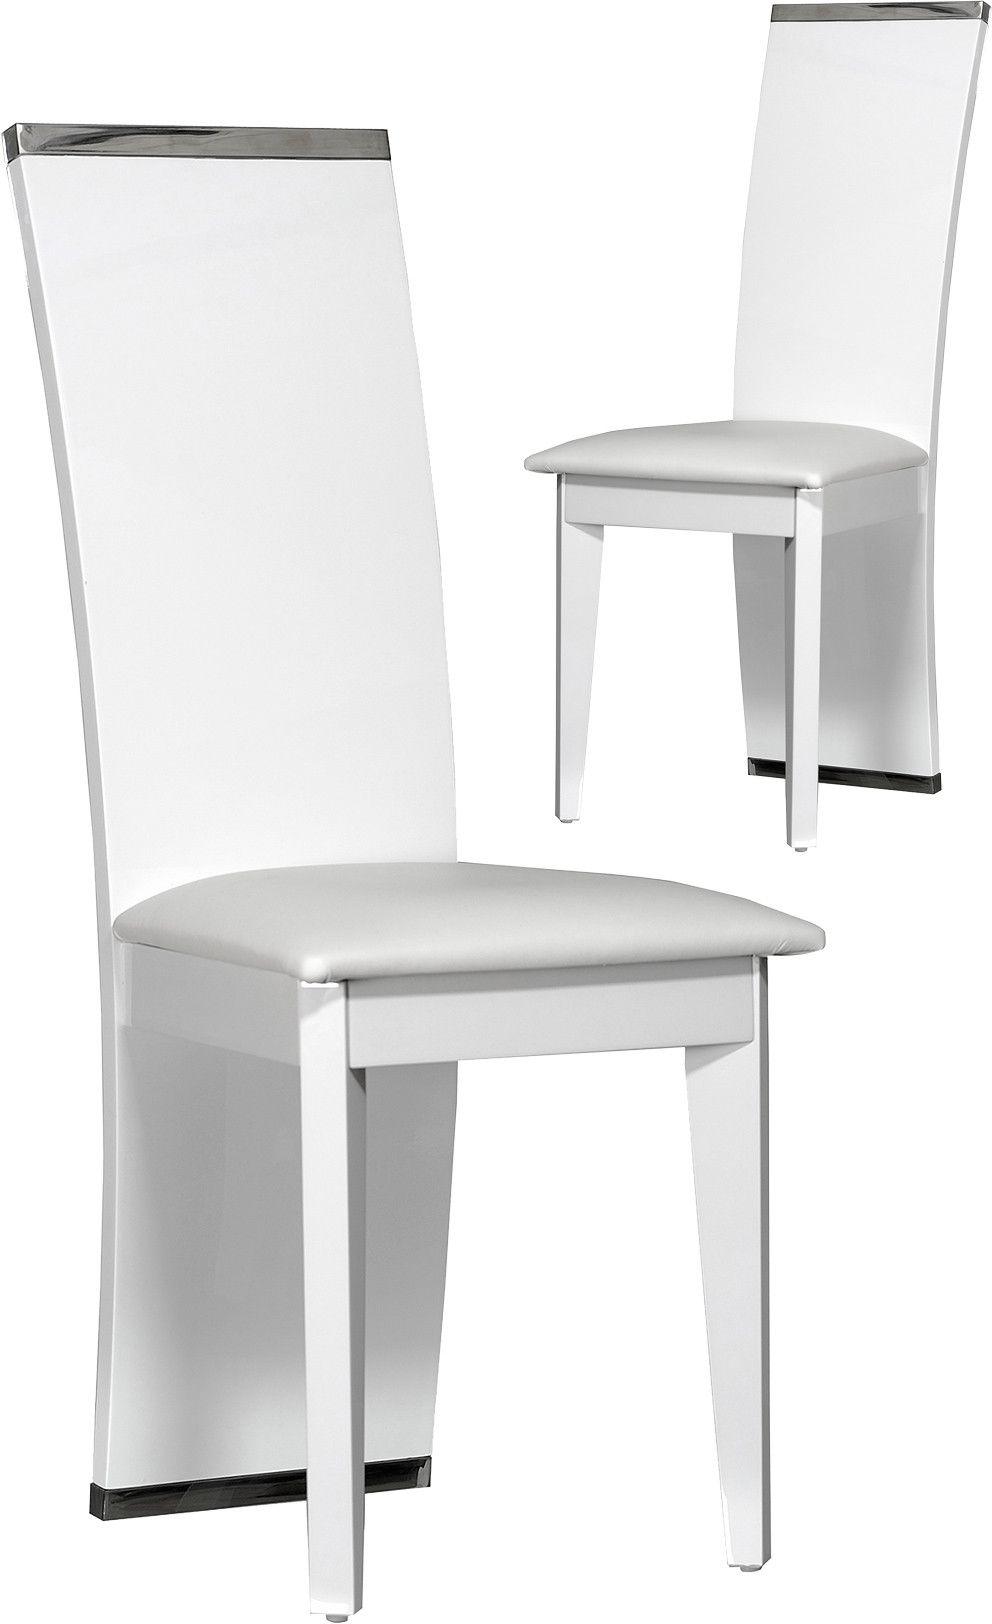 Chaise De Table A Manger Beau Lot De 2 Chaises Salle   Manger Design Blanc En 2019 Of 24 Unique Chaise De Table A Manger